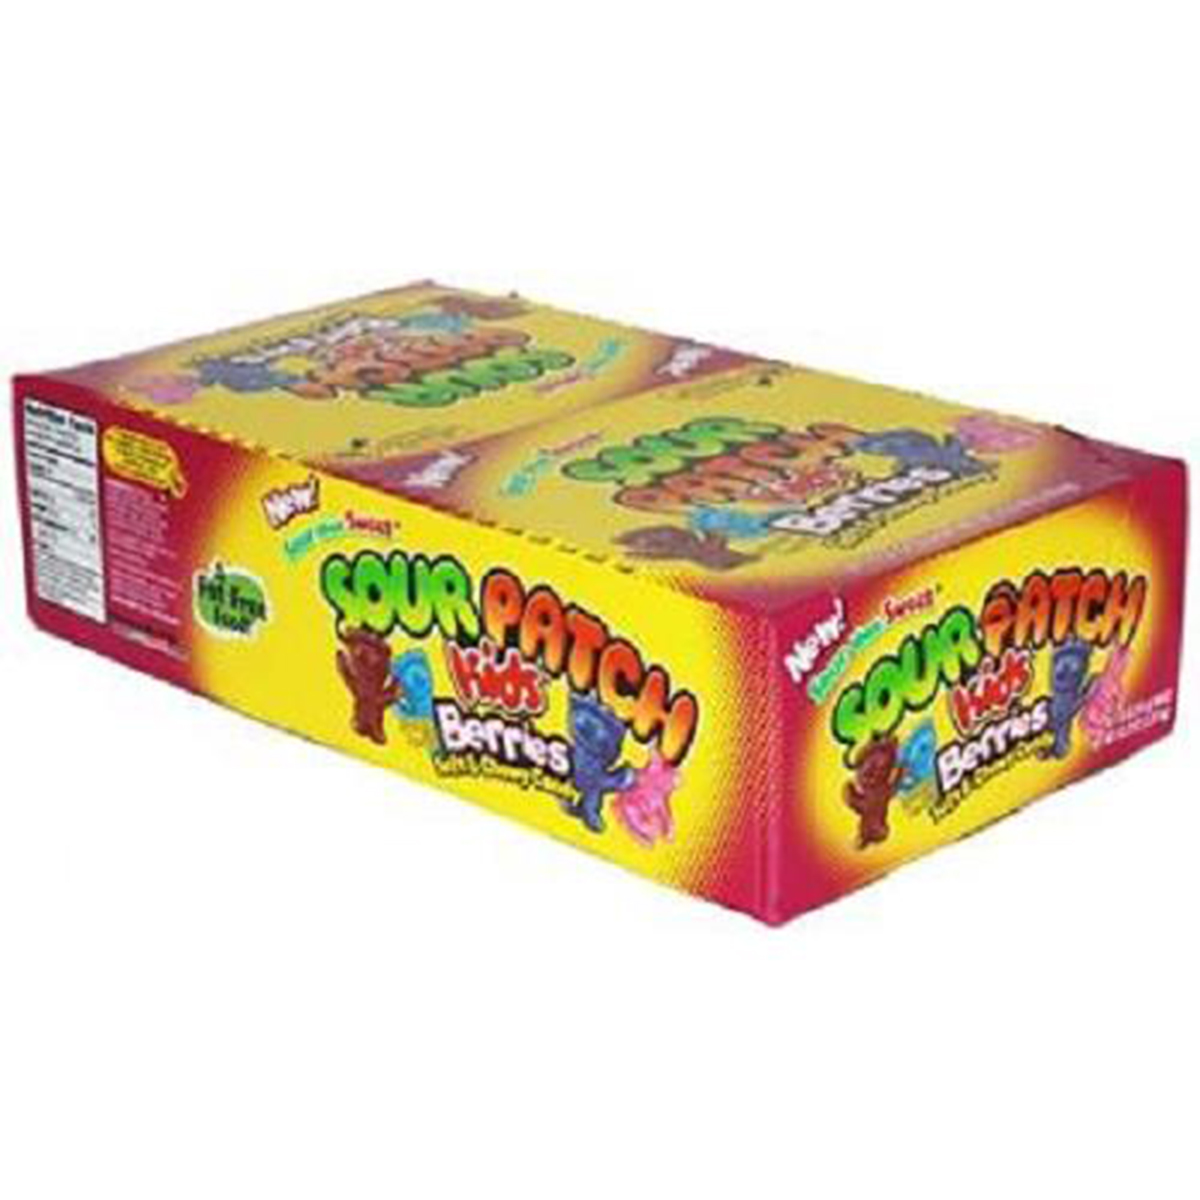 Product Of Sour Patch, Kids - Berries, Count 24 (1.8 oz) - Sugar Candy / Grab Varieties & Flavors